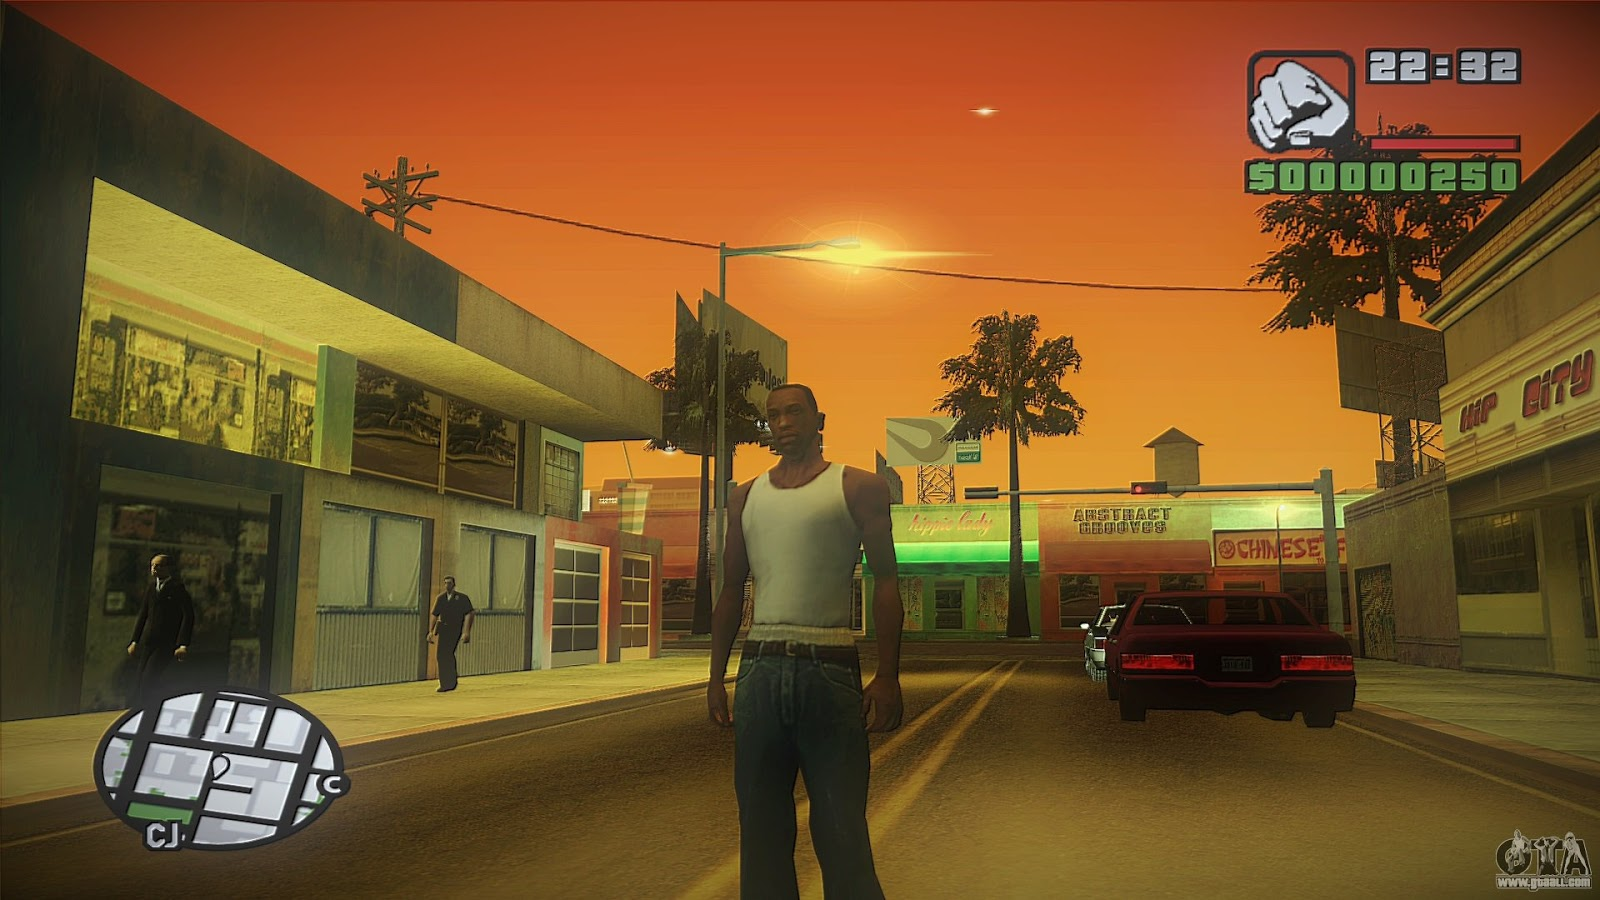 gta gadar pc game download utorrent